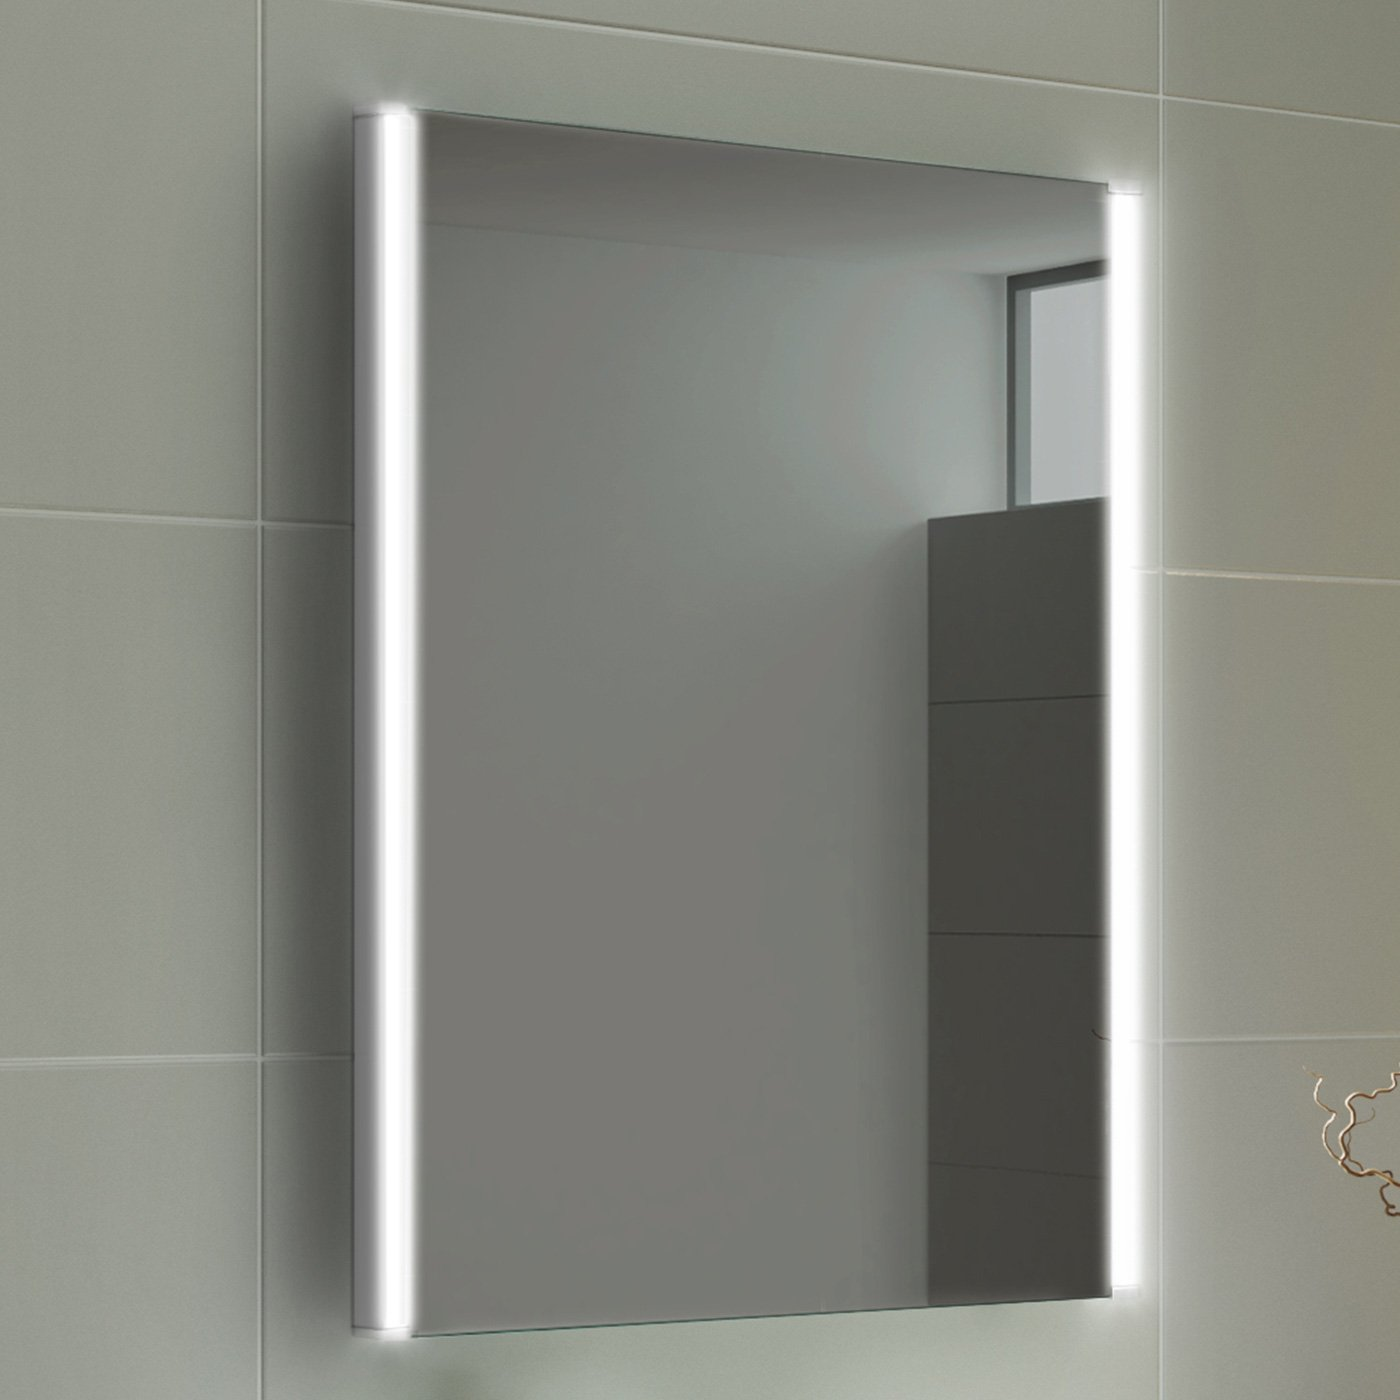 500 x 700 mm Modern Illuminated Battery LED Light Bathroom Mirror MC158 iBathUK